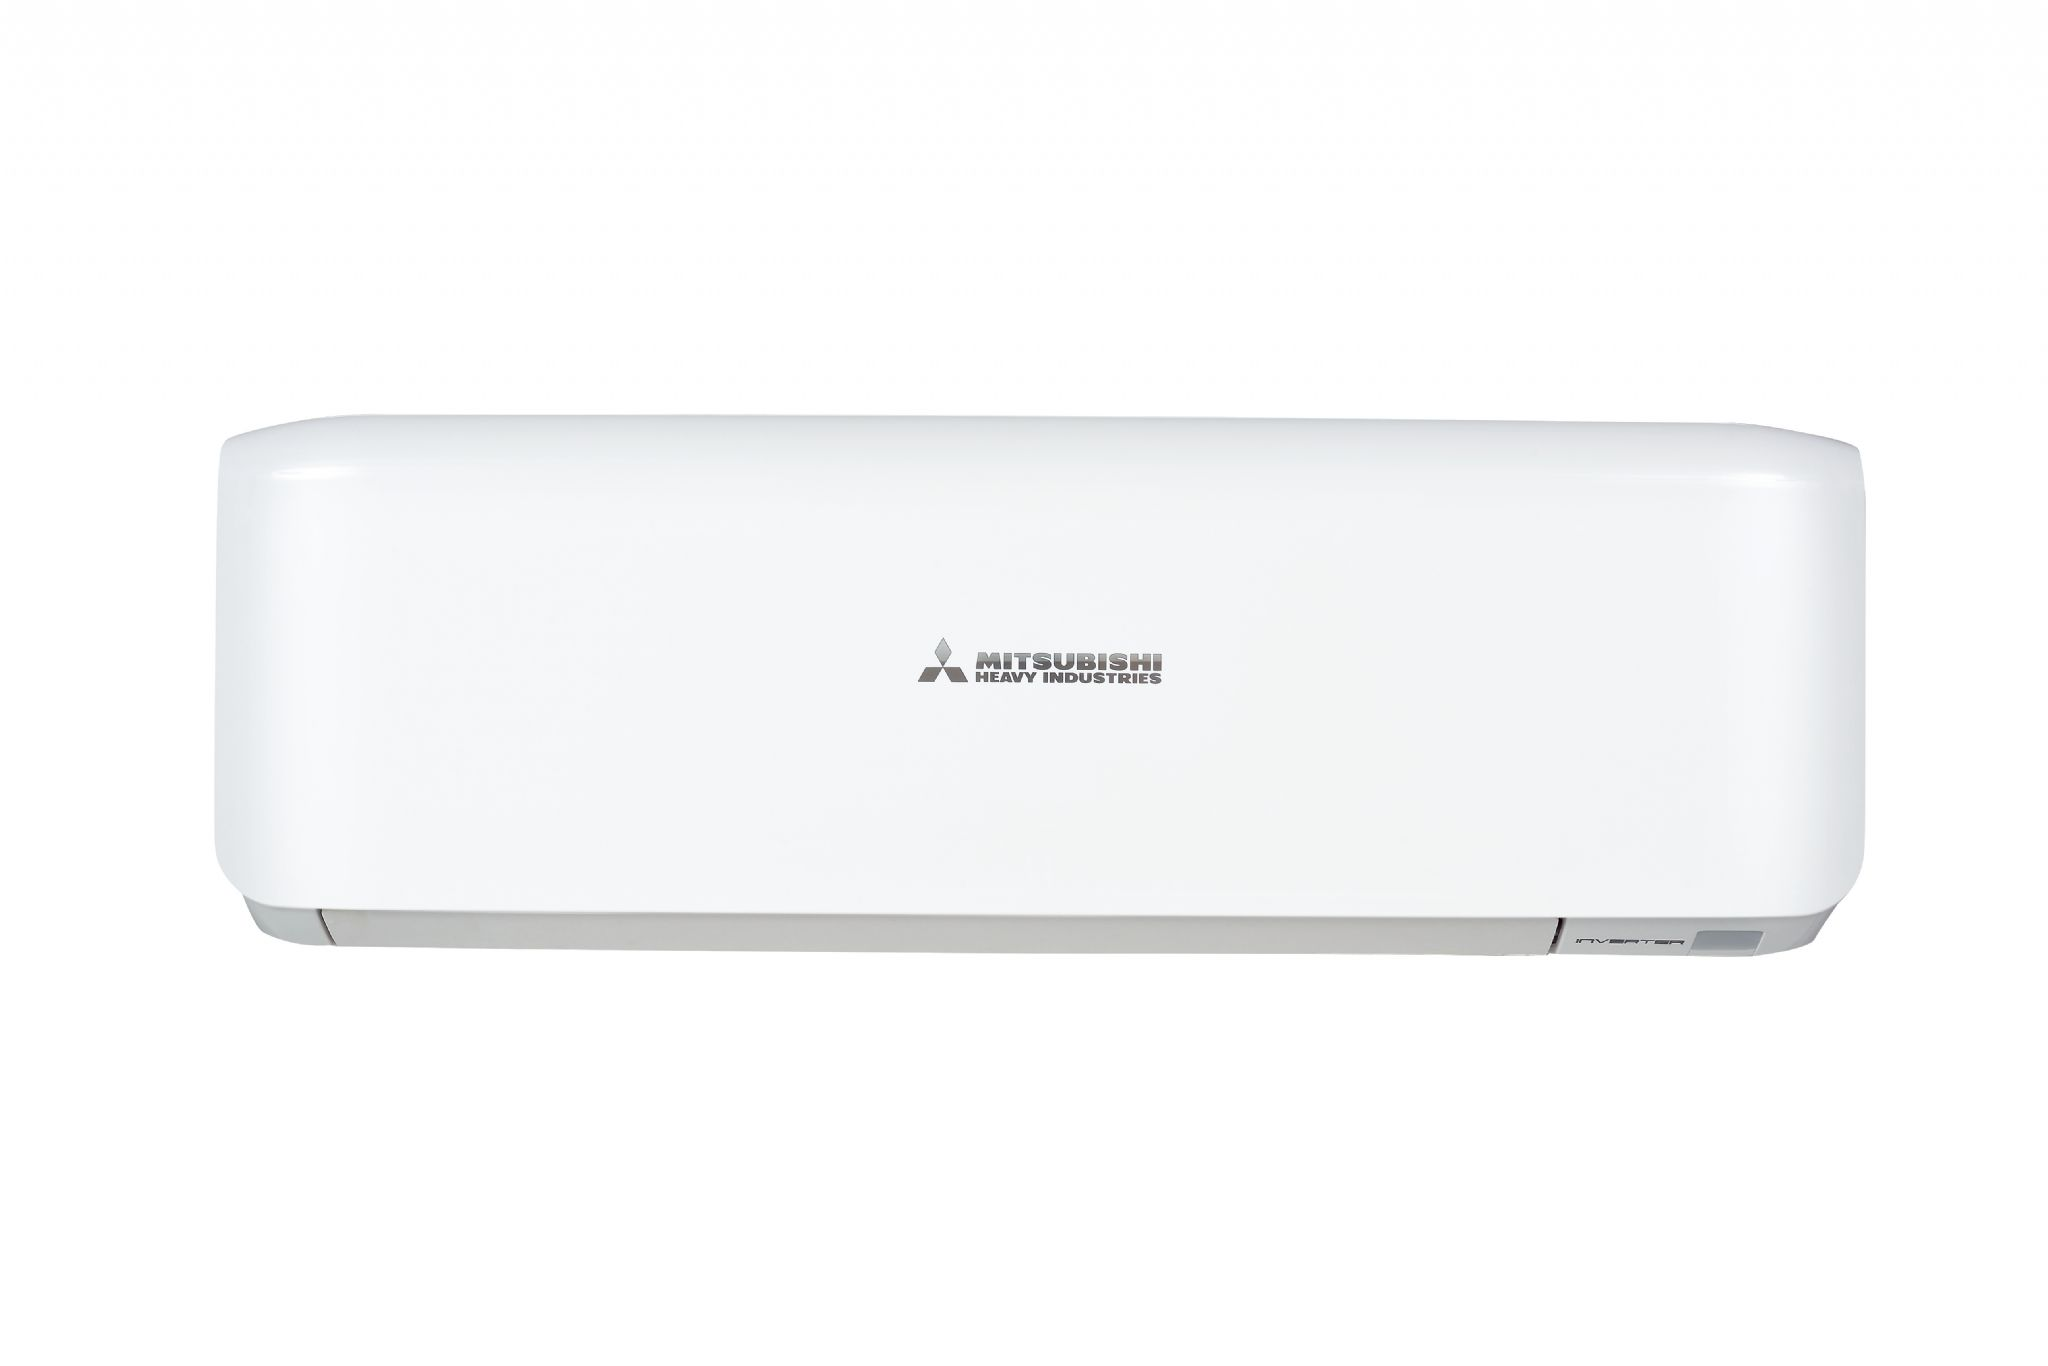 Mitsubishi Heavy Industries Air Conditioning SRK20ZS-S